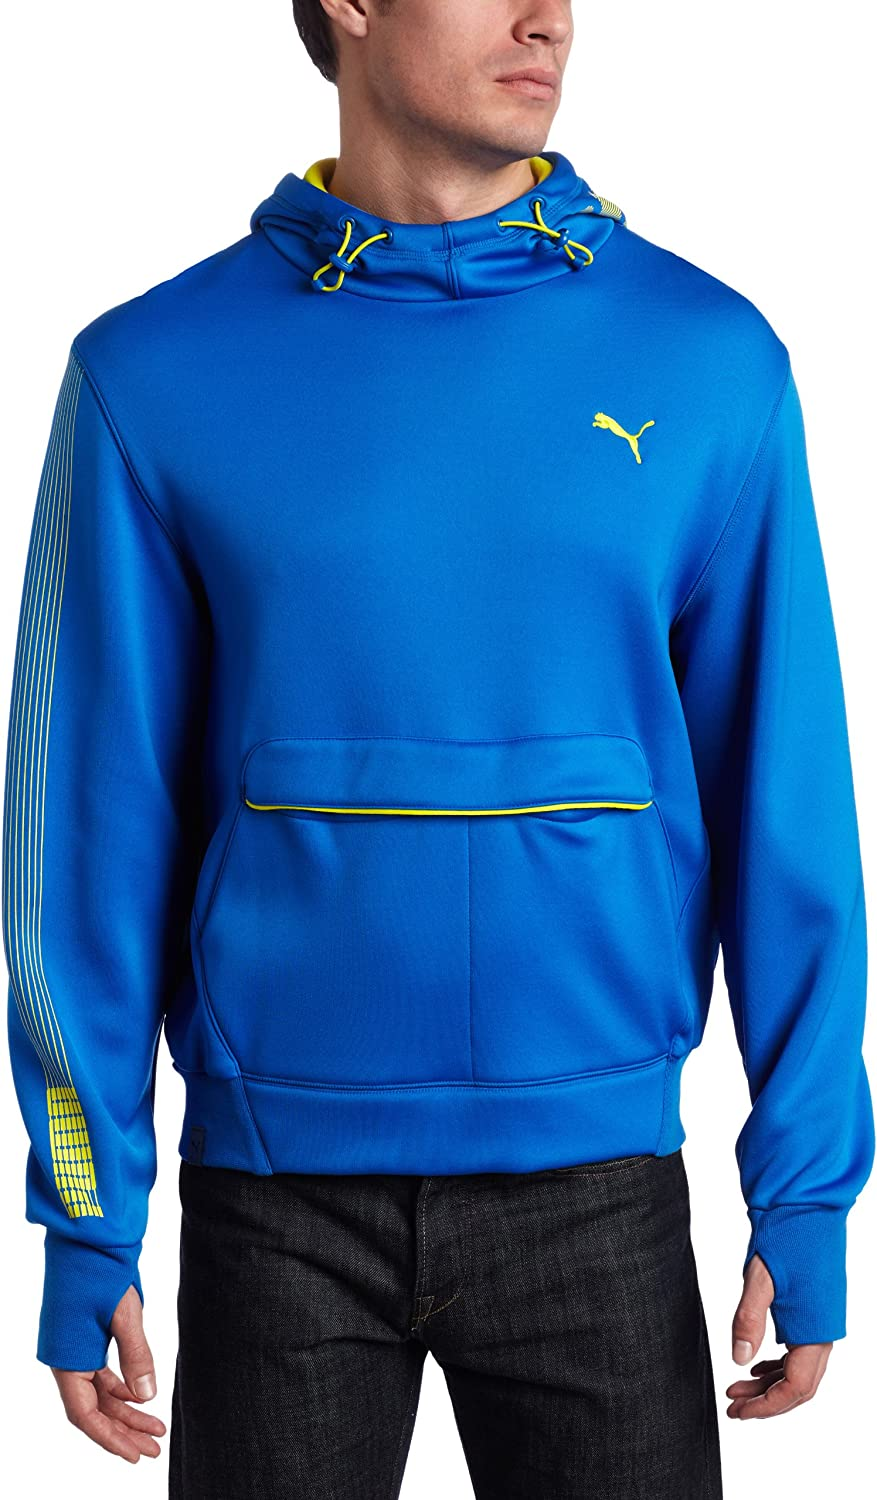 PUMA Men's Tech Graphic H Sweat Jacket, Royal, Large